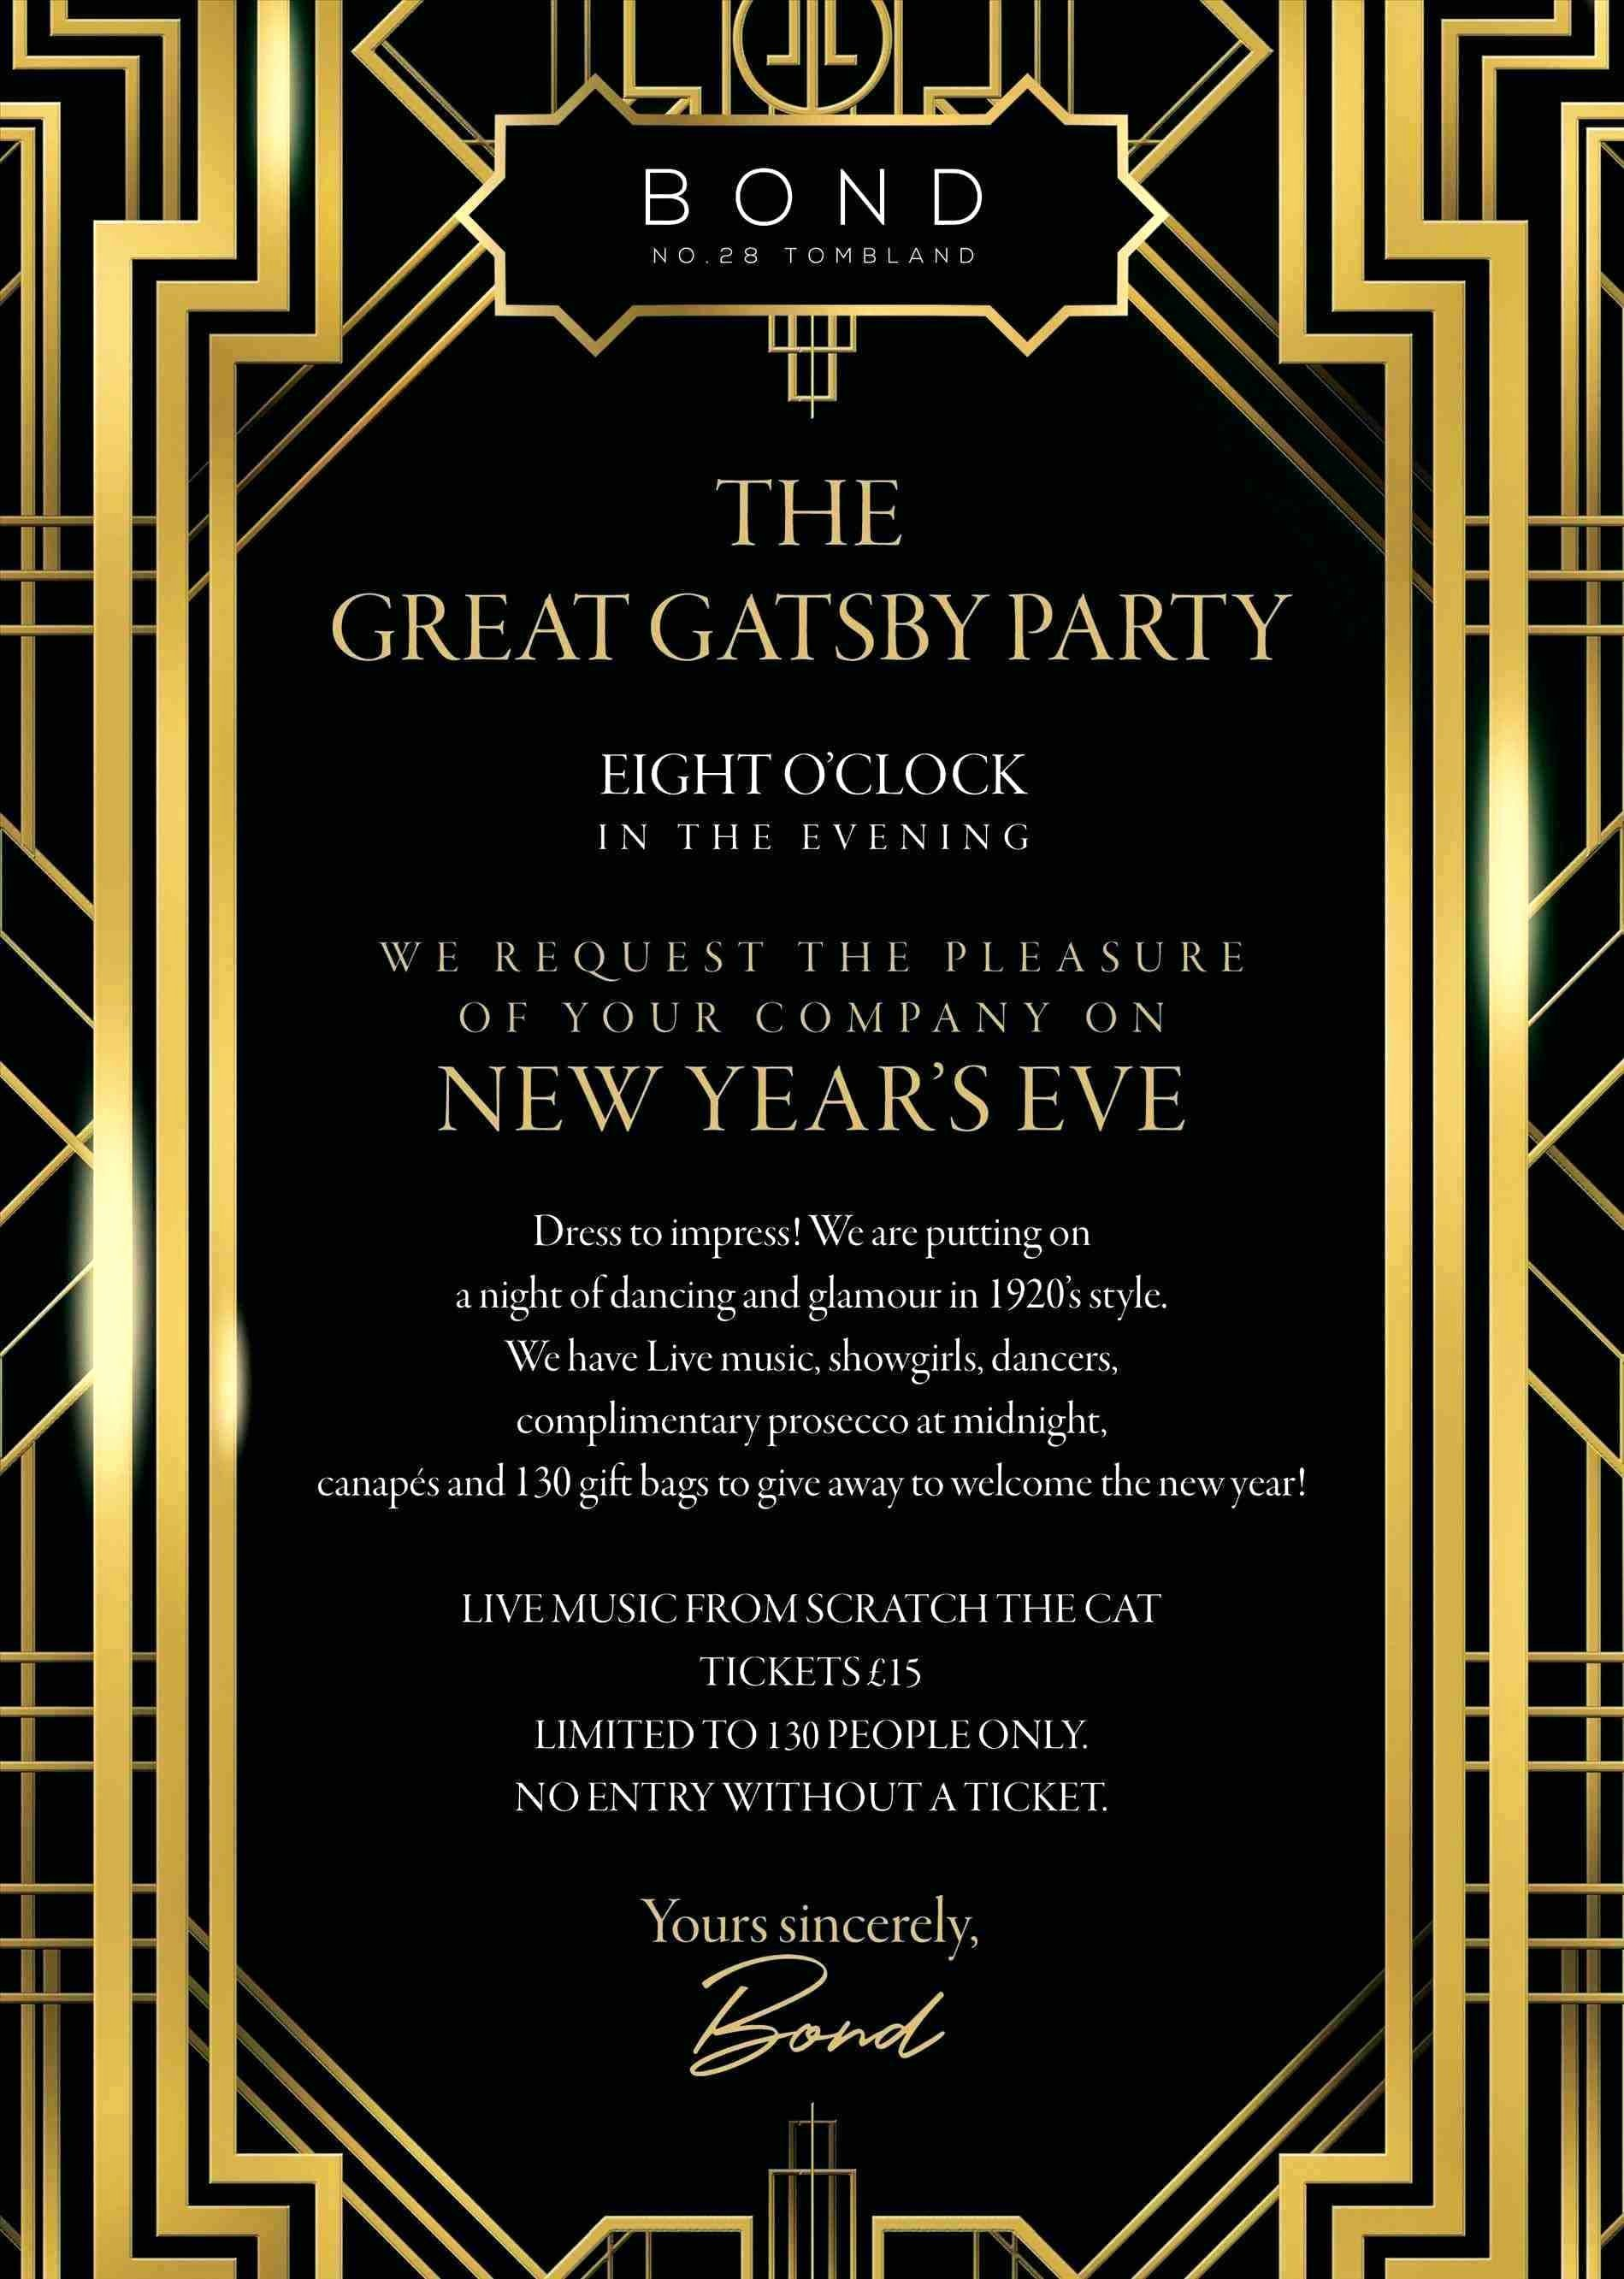 Great Gatsby Party Invitation Templates Beautiful Great Gatsby Party Invitation Template Free